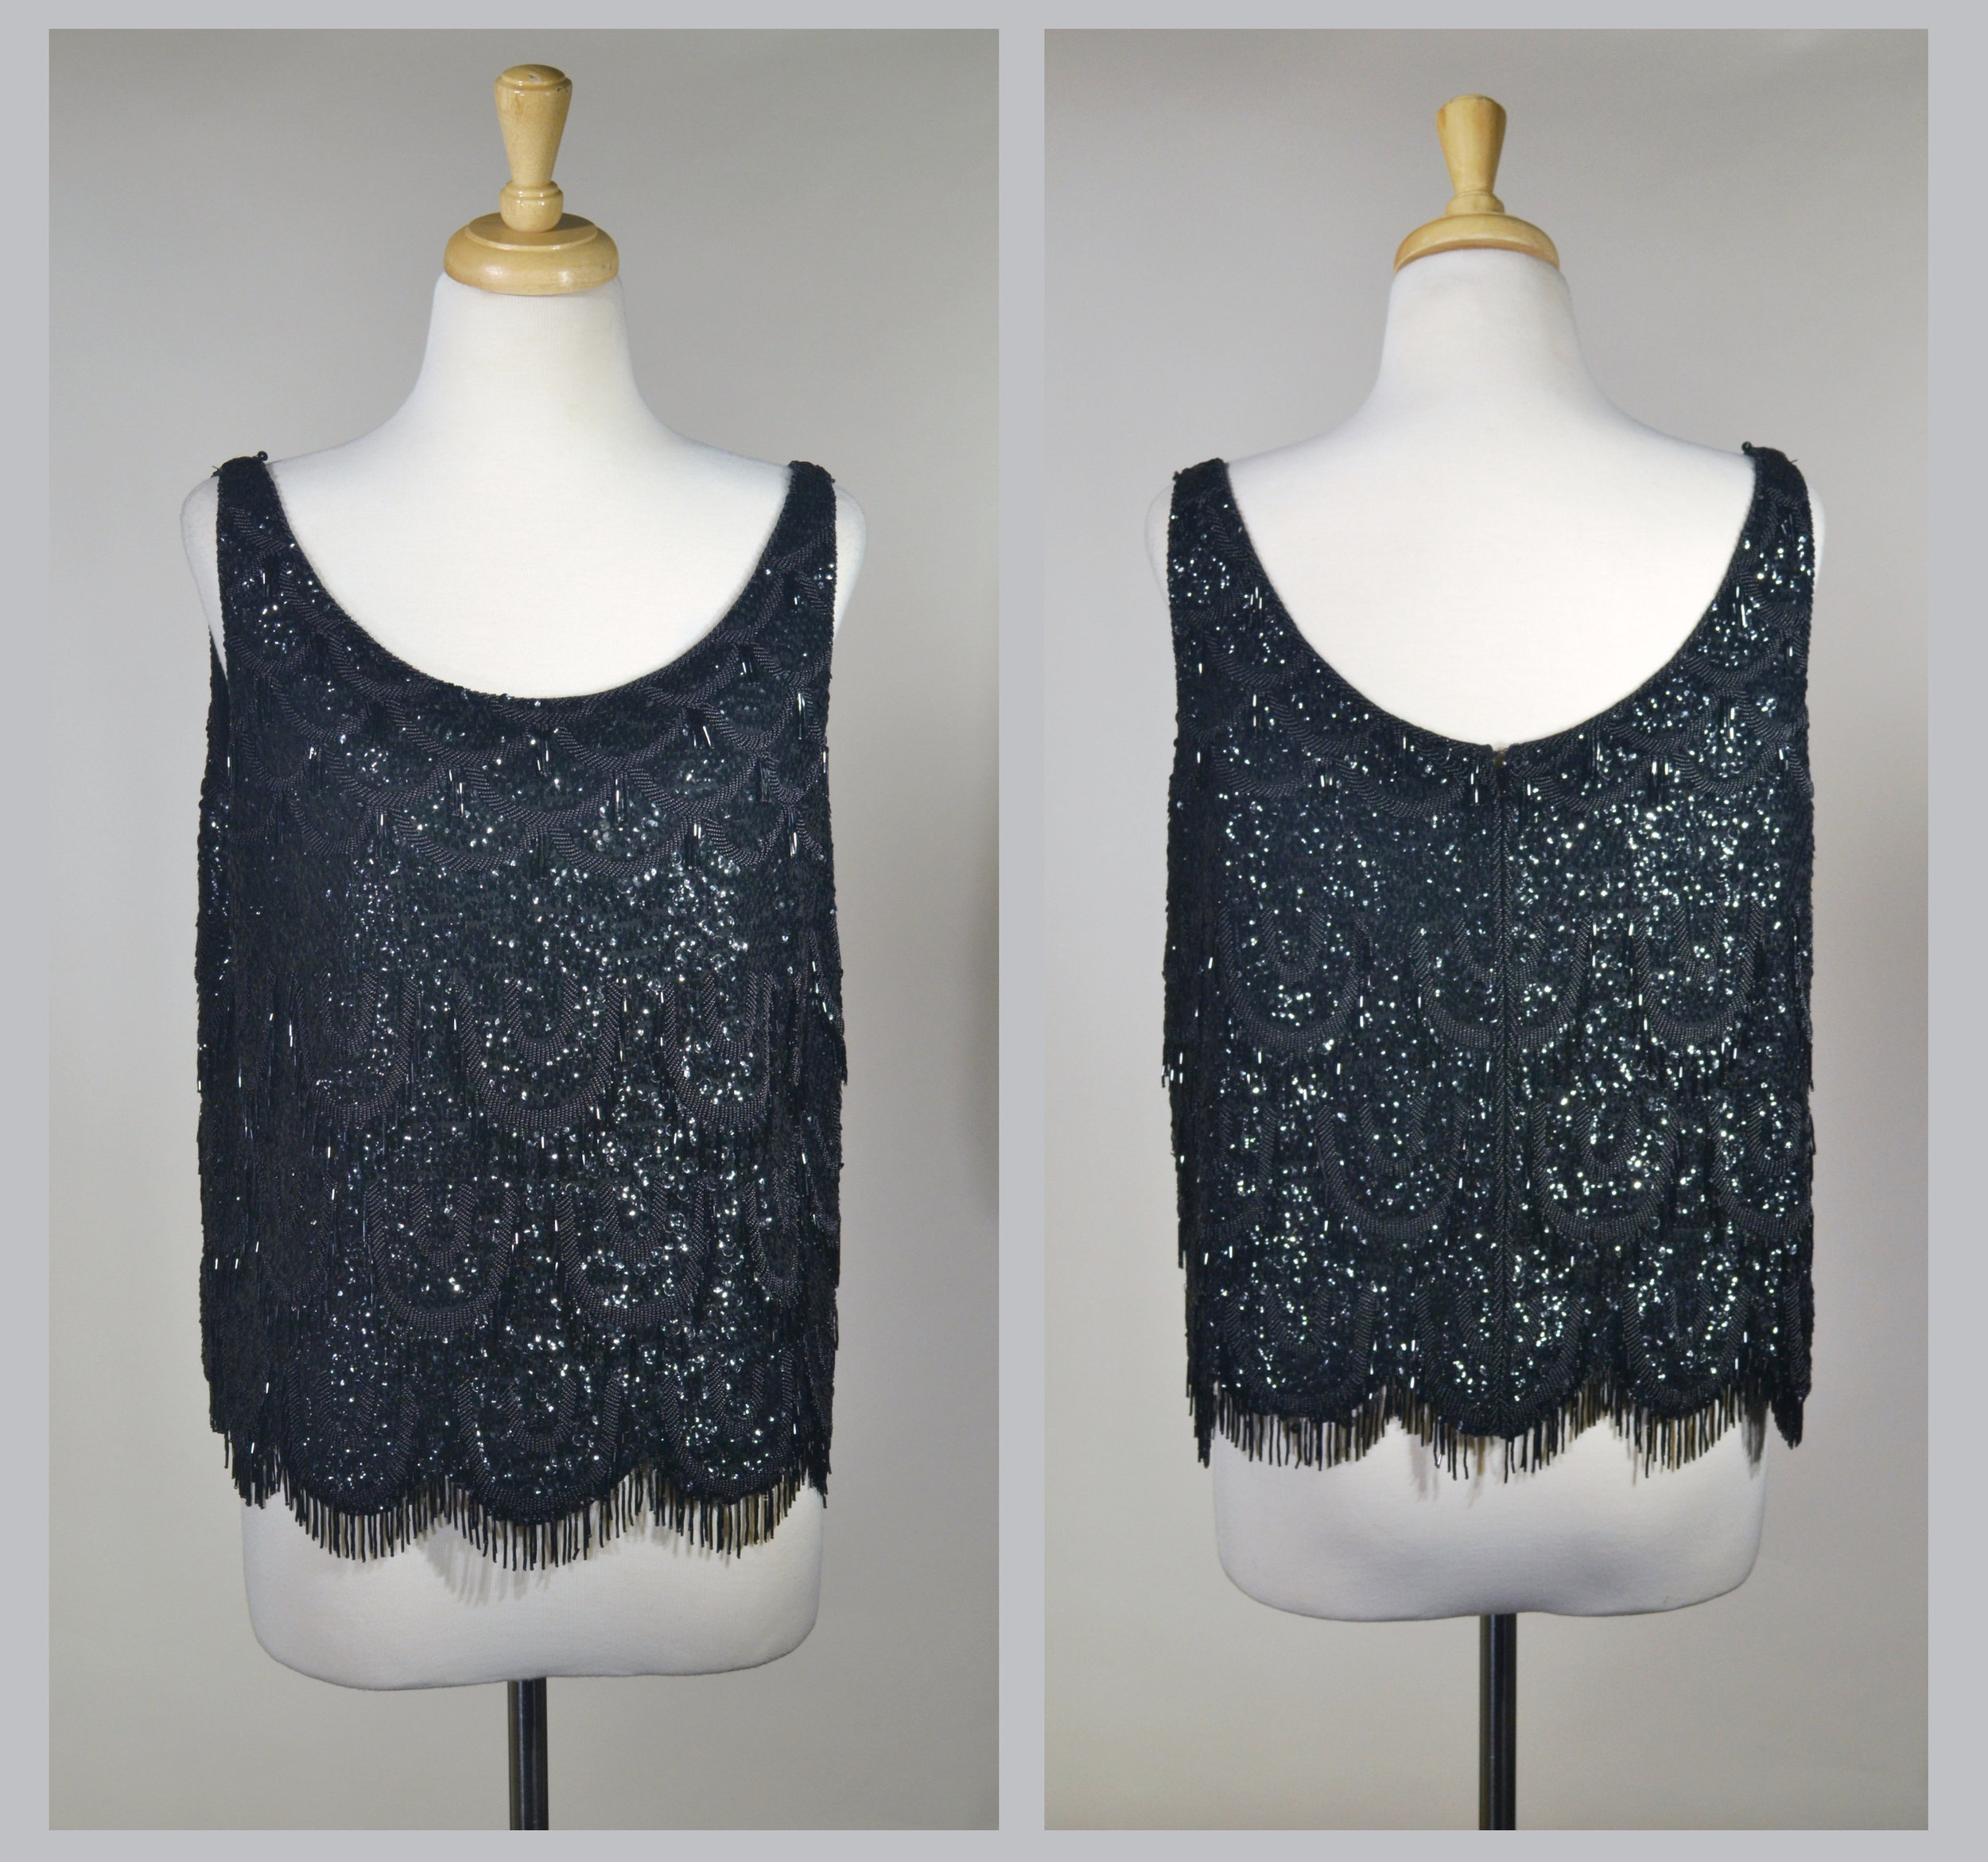 1960s Sequin and Beaded Sleeveless Top